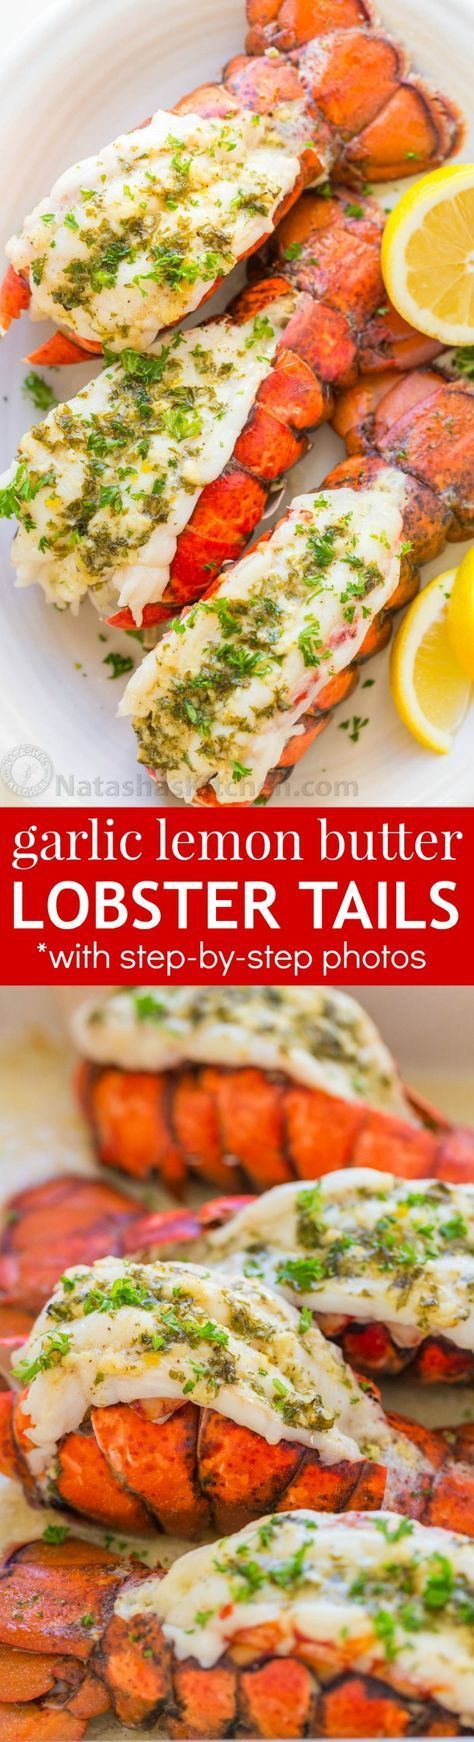 The ONLY Lobster Tails Recipe you'll need! Broiled lobster tails are juicy, flavorful, and quick to make! + How-To butterfly lobster tails photo tutorial! | natashaskitchen.com